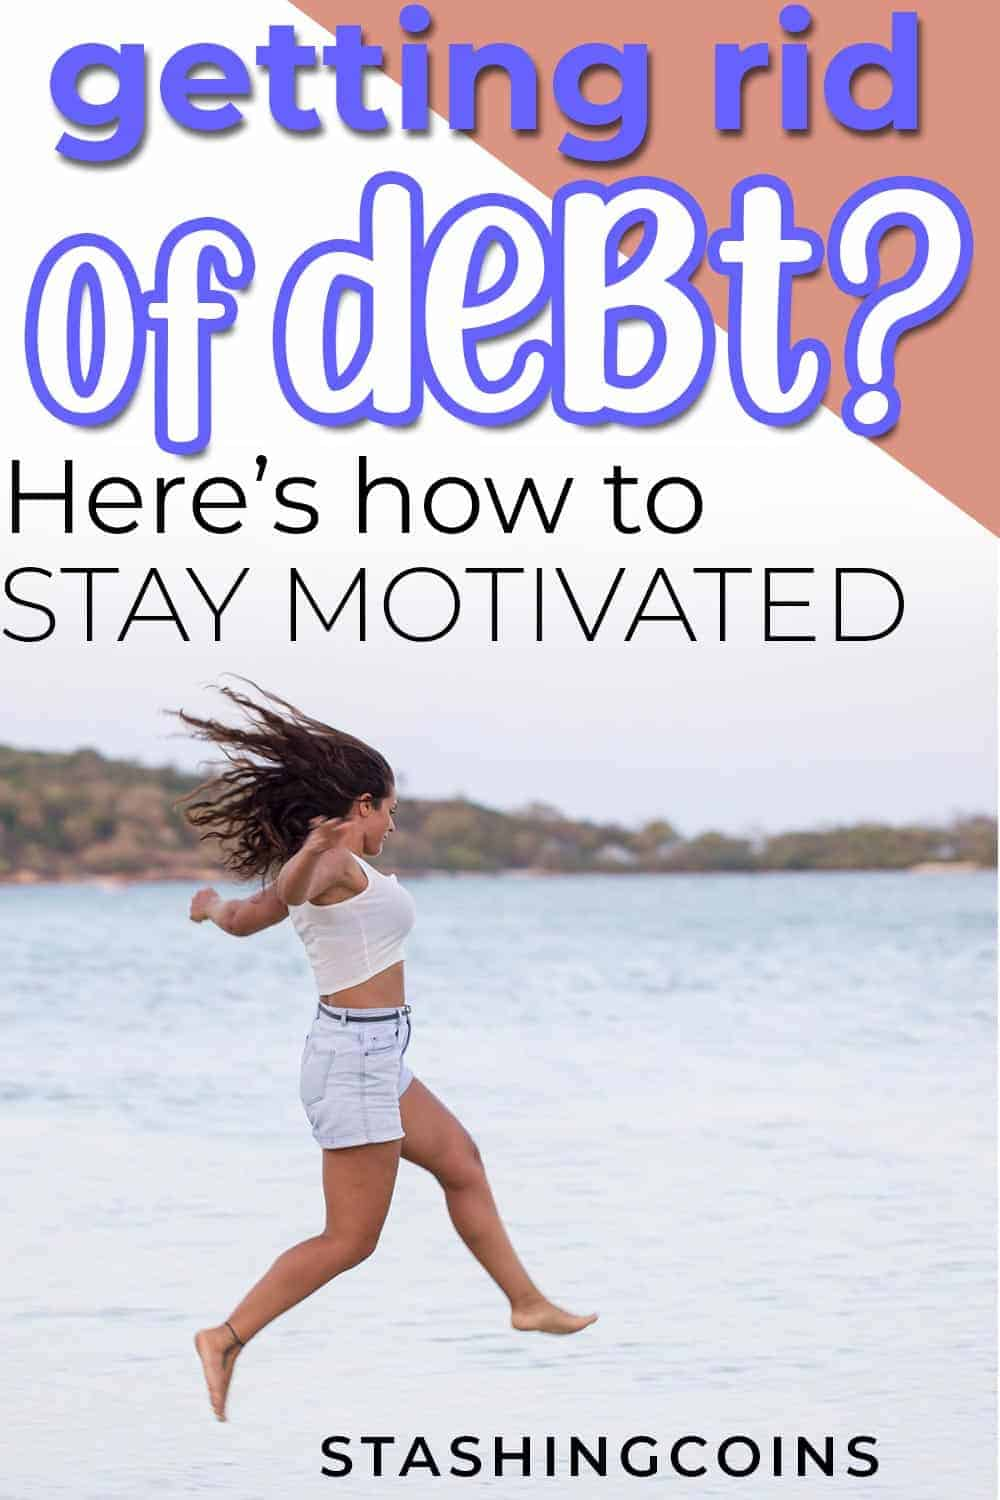 Motivation while getting rid of debt